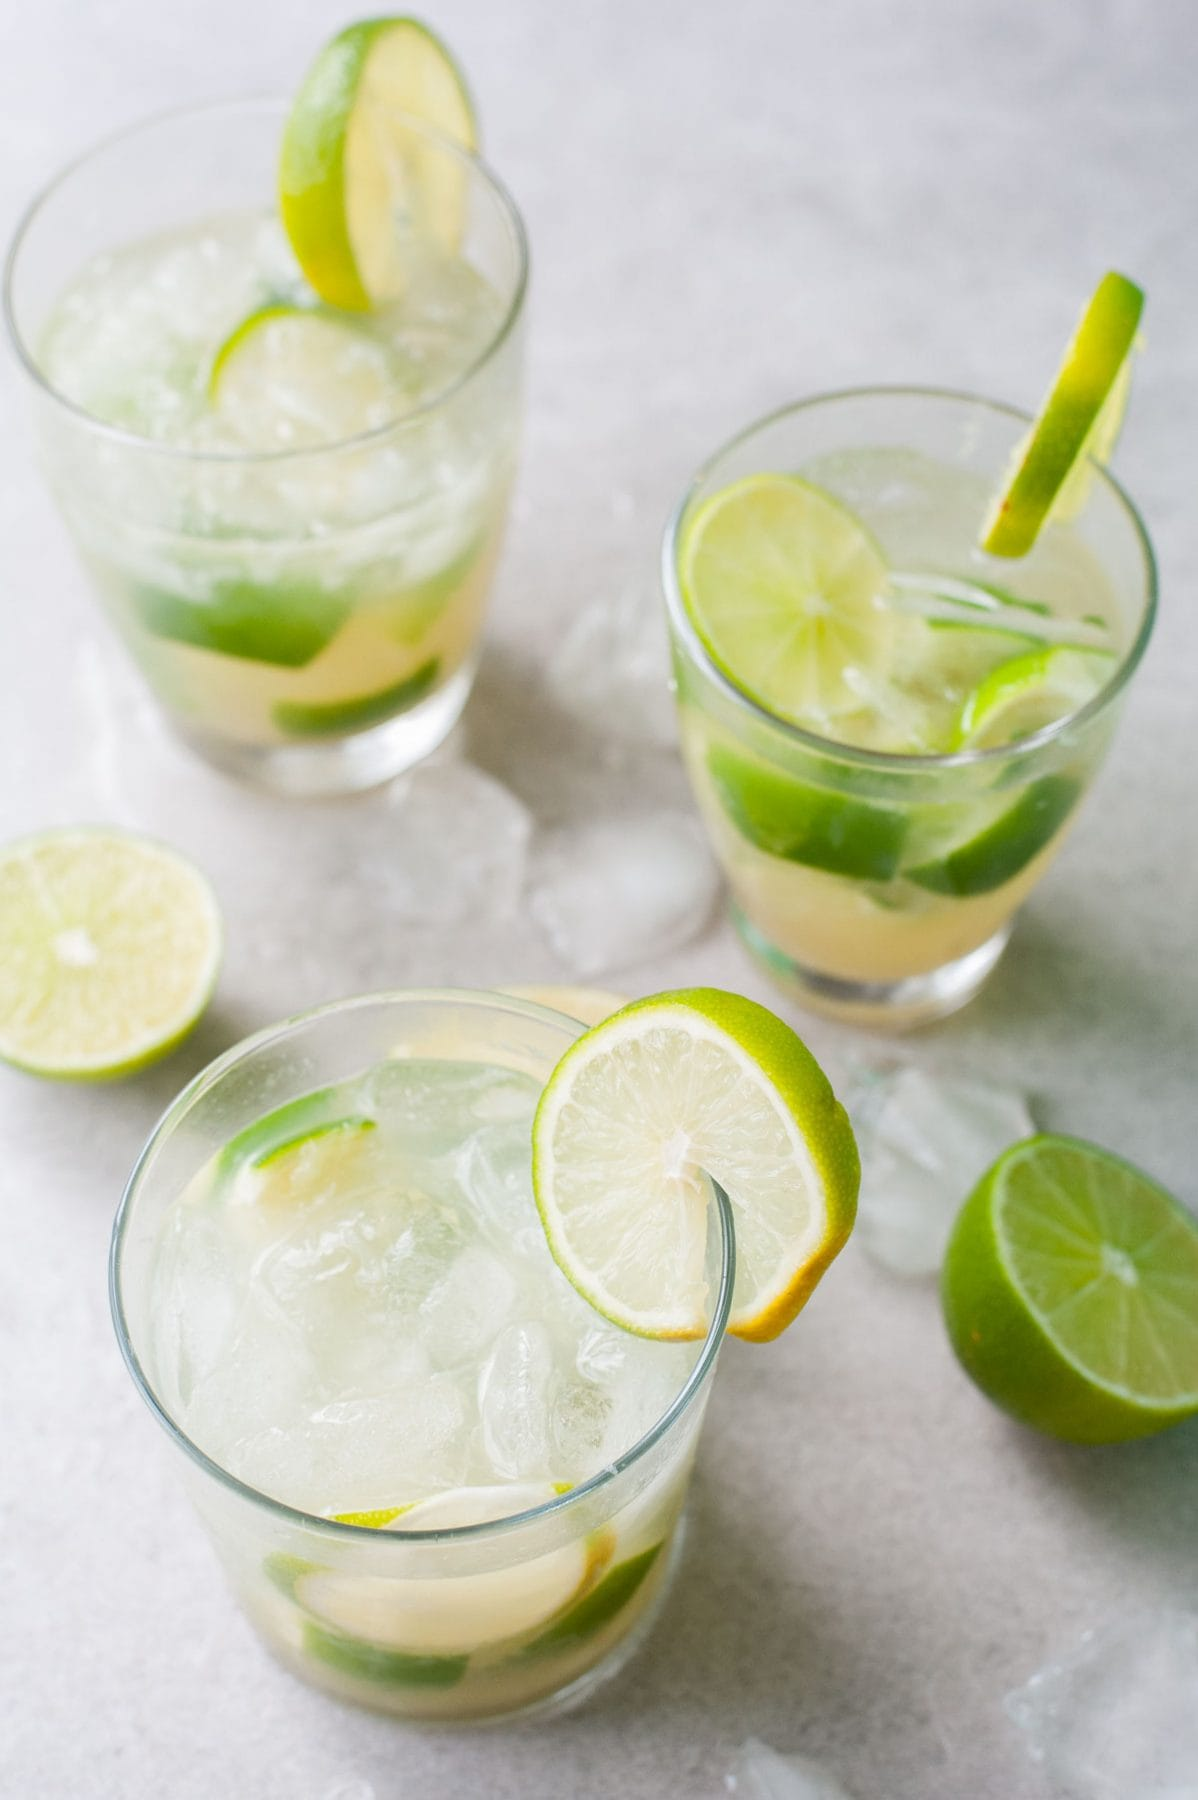 3 glasses with caipirinha, limes and ice around the glasses